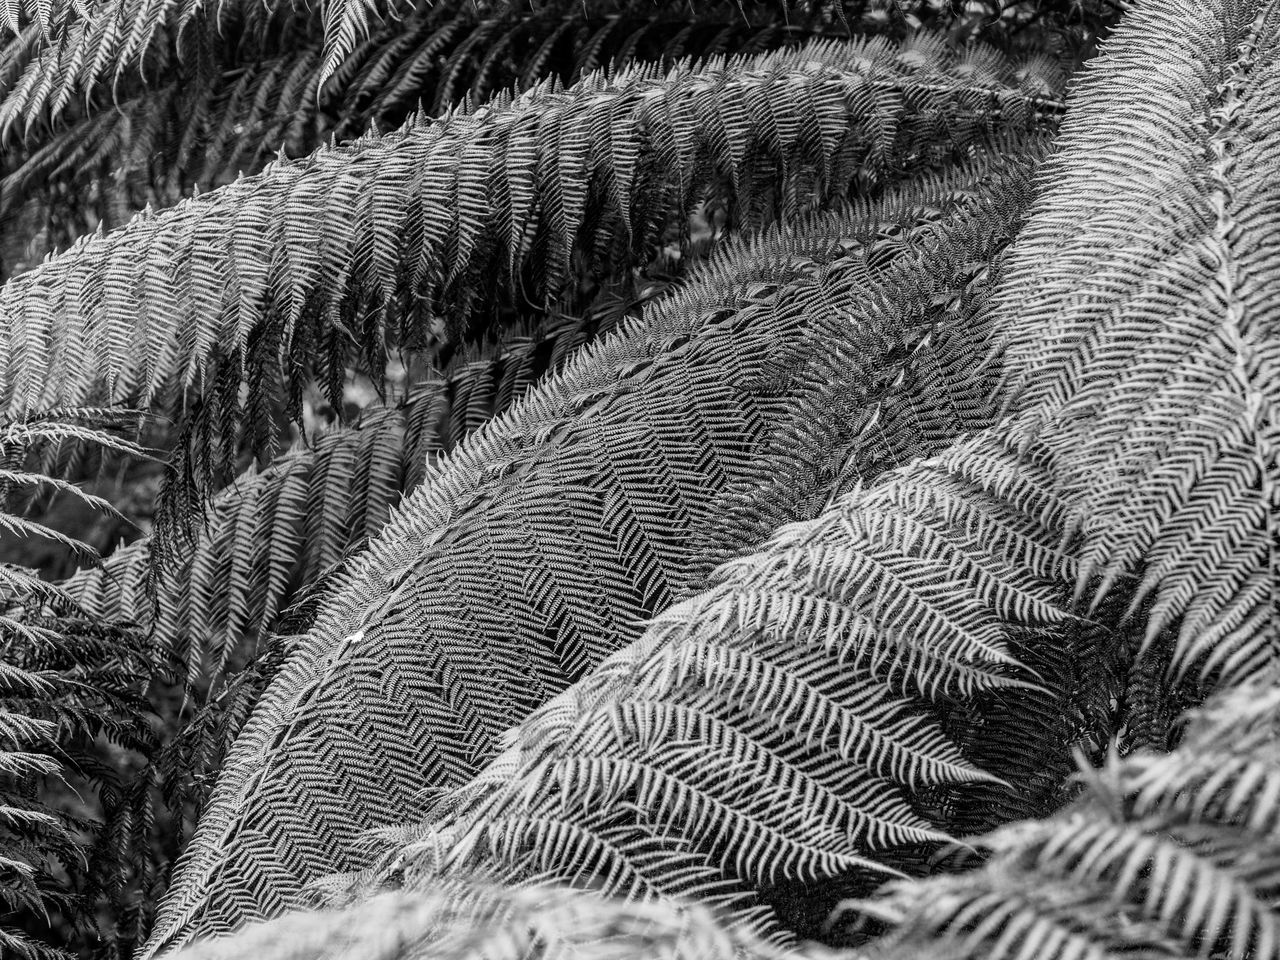 New Zealand tree fern Abstract Backgrounds Blackandwhite Close-up Fern Fragility Nature Pattern Tree